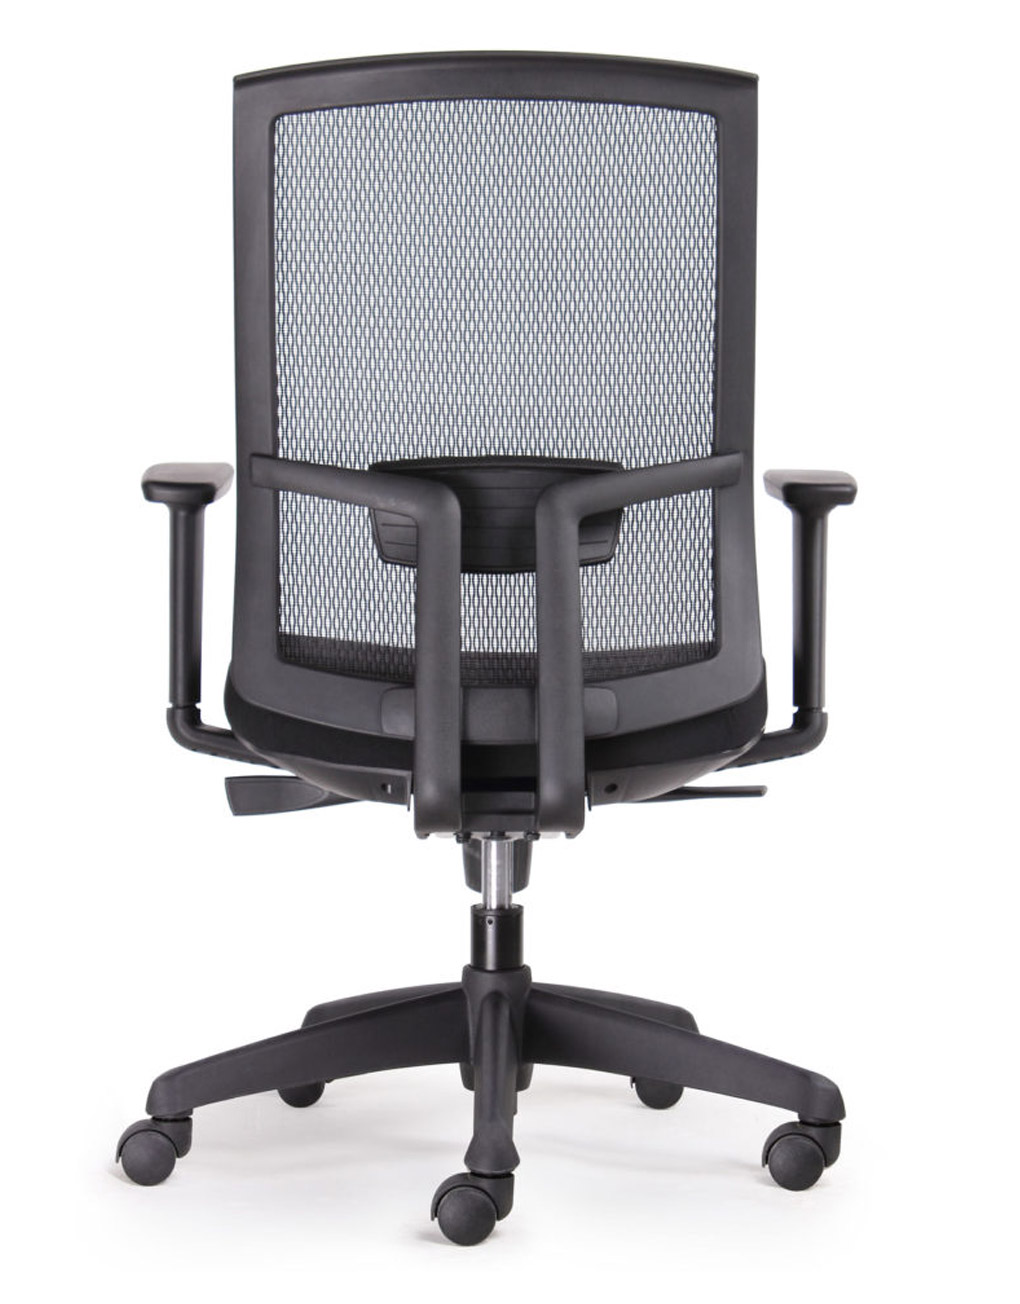 Kal task chair epic office furniture brisbane australia Modern home office furniture brisbane